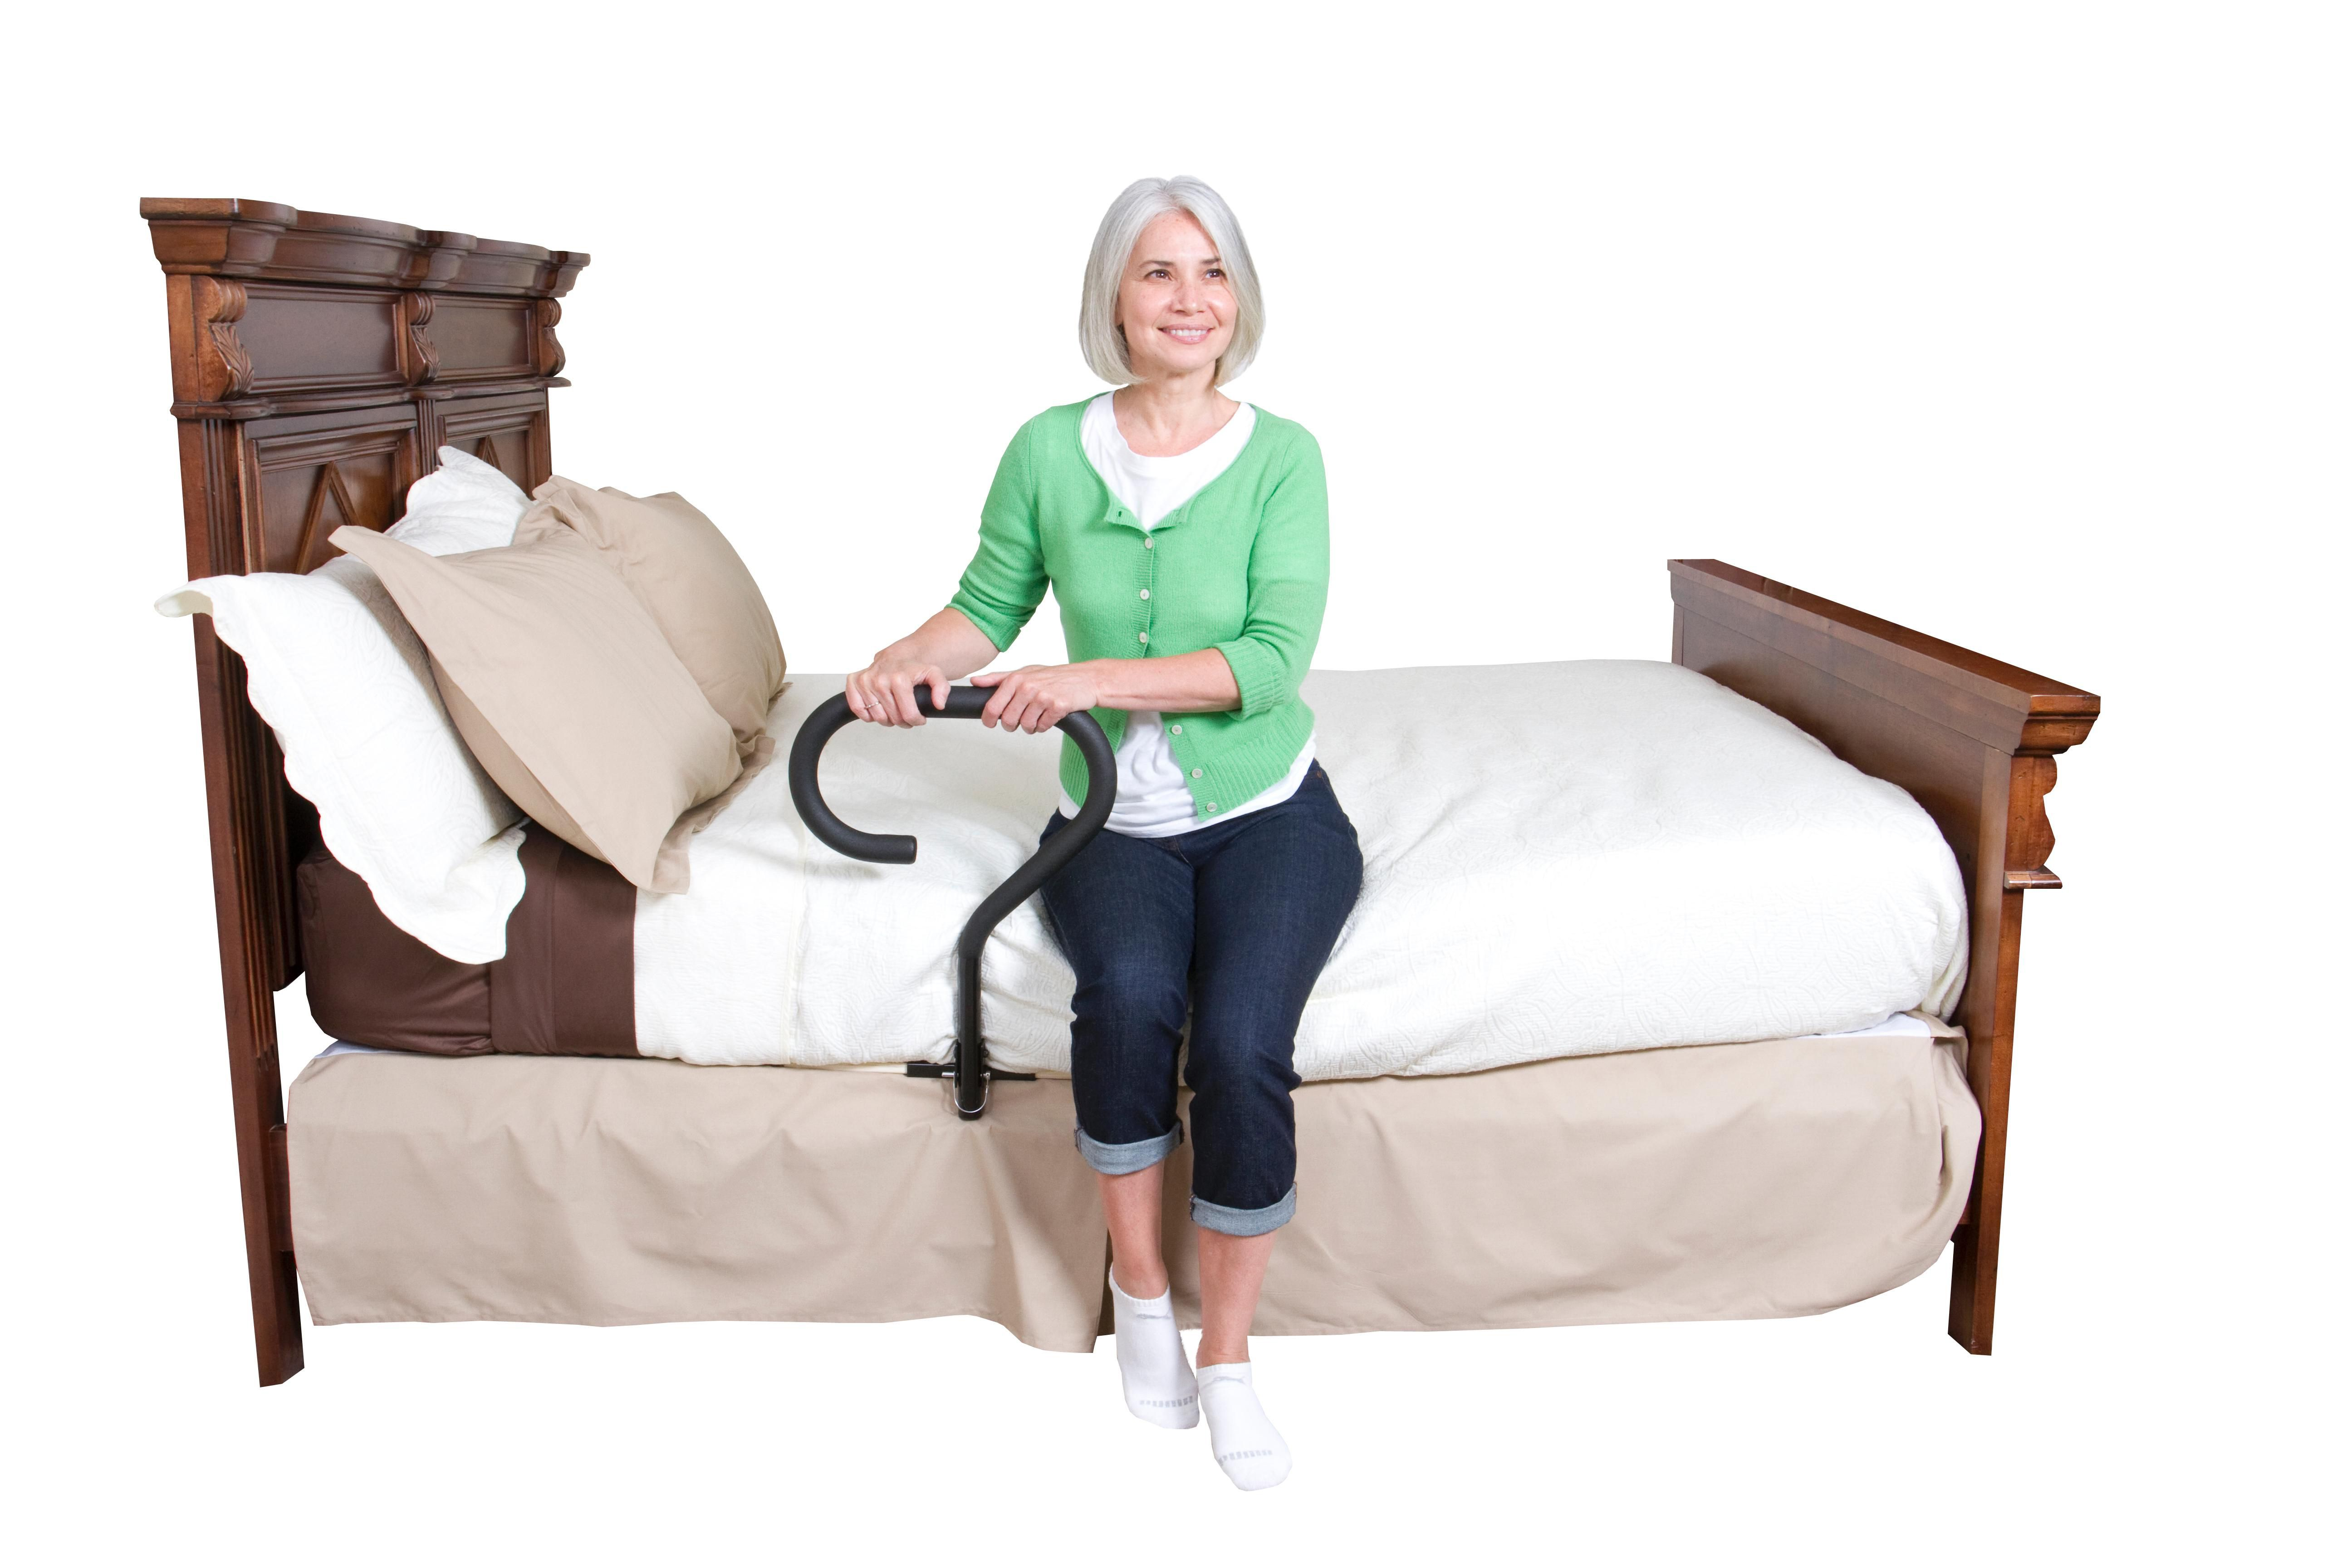 Bed Cane and 4 Pocket Organizer by Stander Stander, Bed